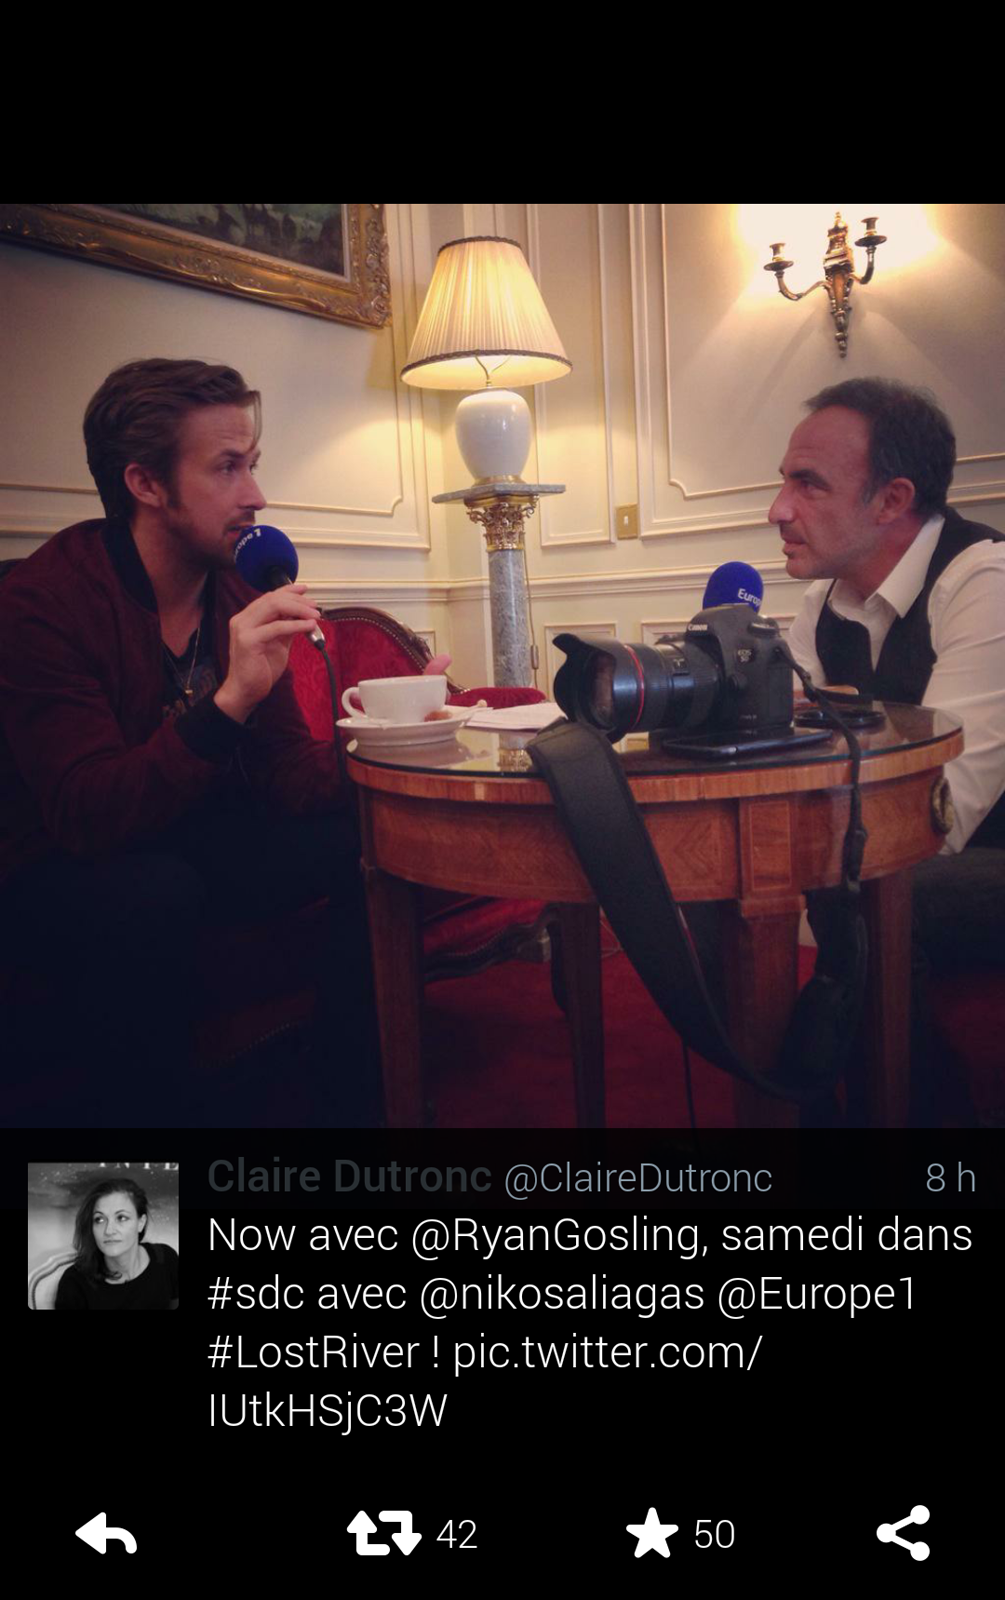 Ryan Gosling interview Nikos Aliagas pour Europe 1 radio Lost River movie premier film promo paris photo twitter by Claire Dutronc